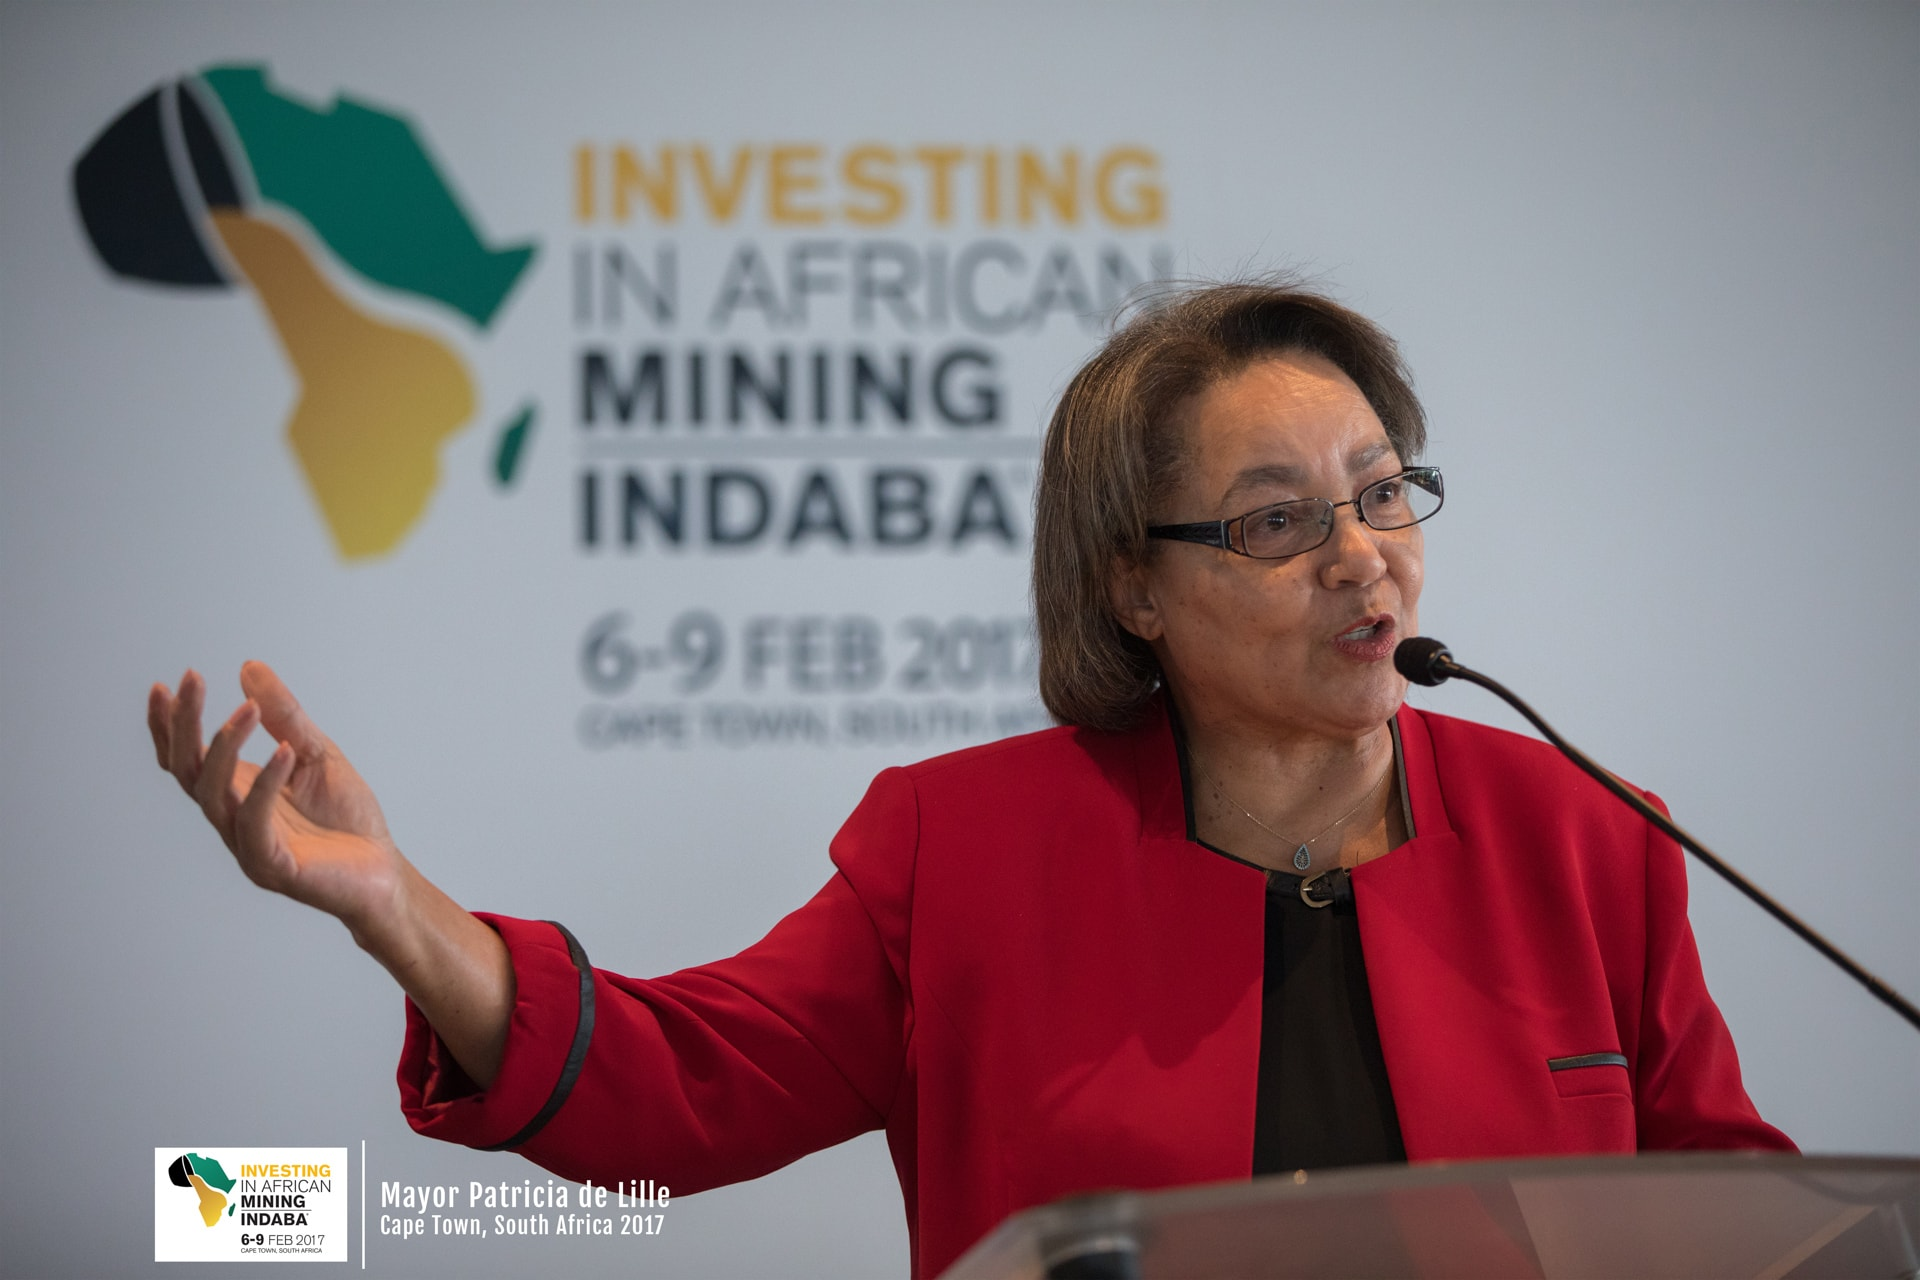 Mayor Patricia de Lille at Mining Indaba Event